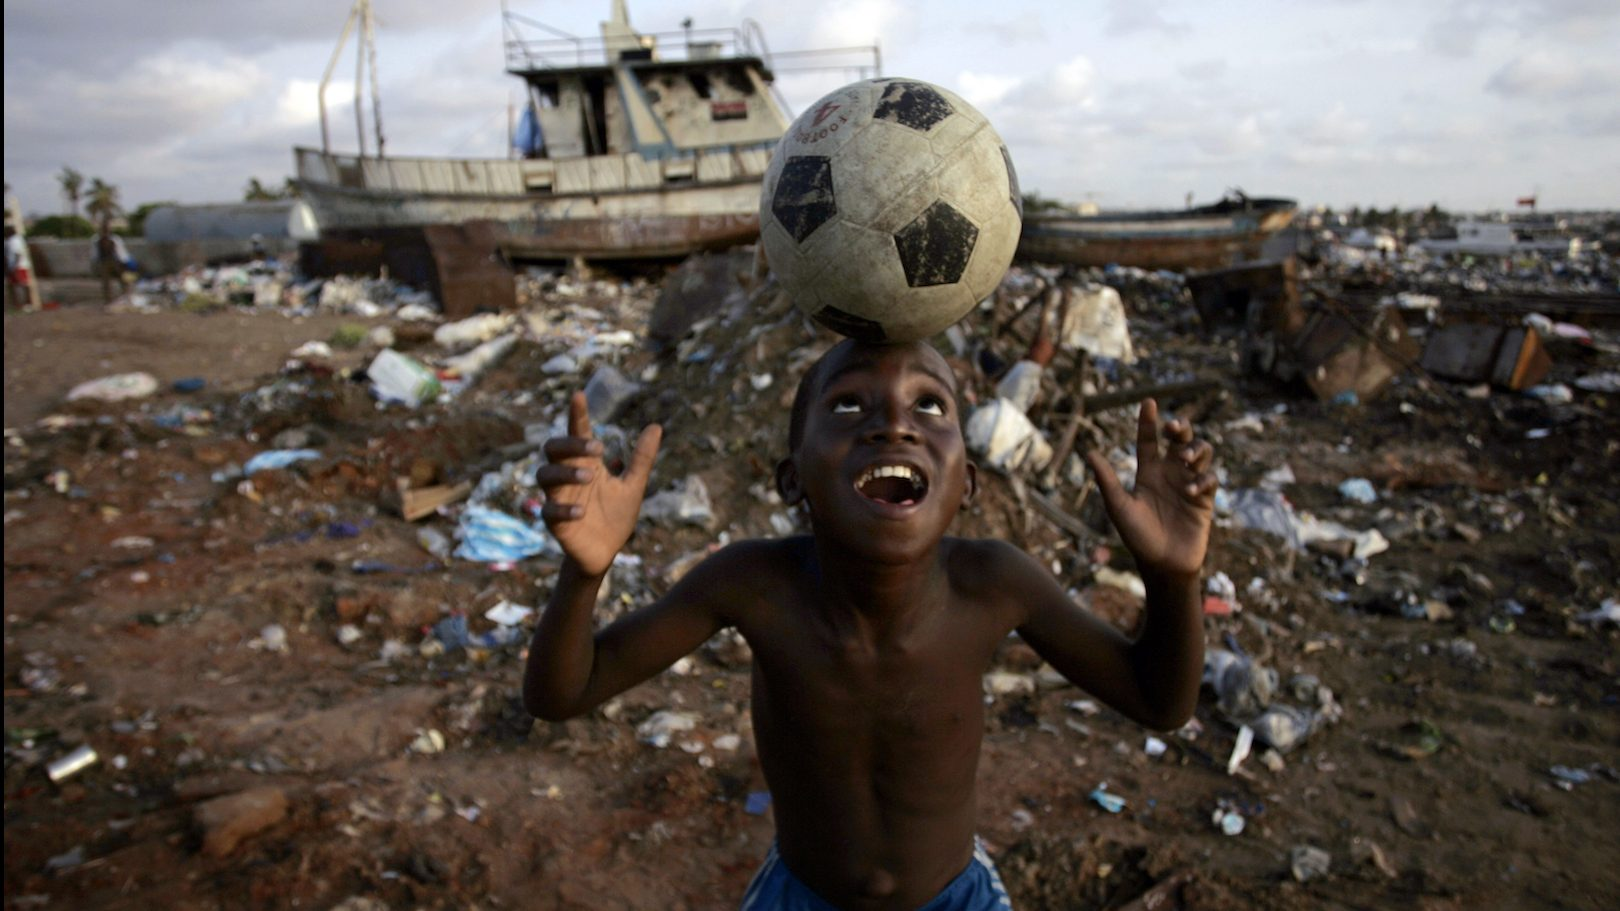 An Angolan youth plays soccer in the streets of the capital Luanda January 30, 2010.